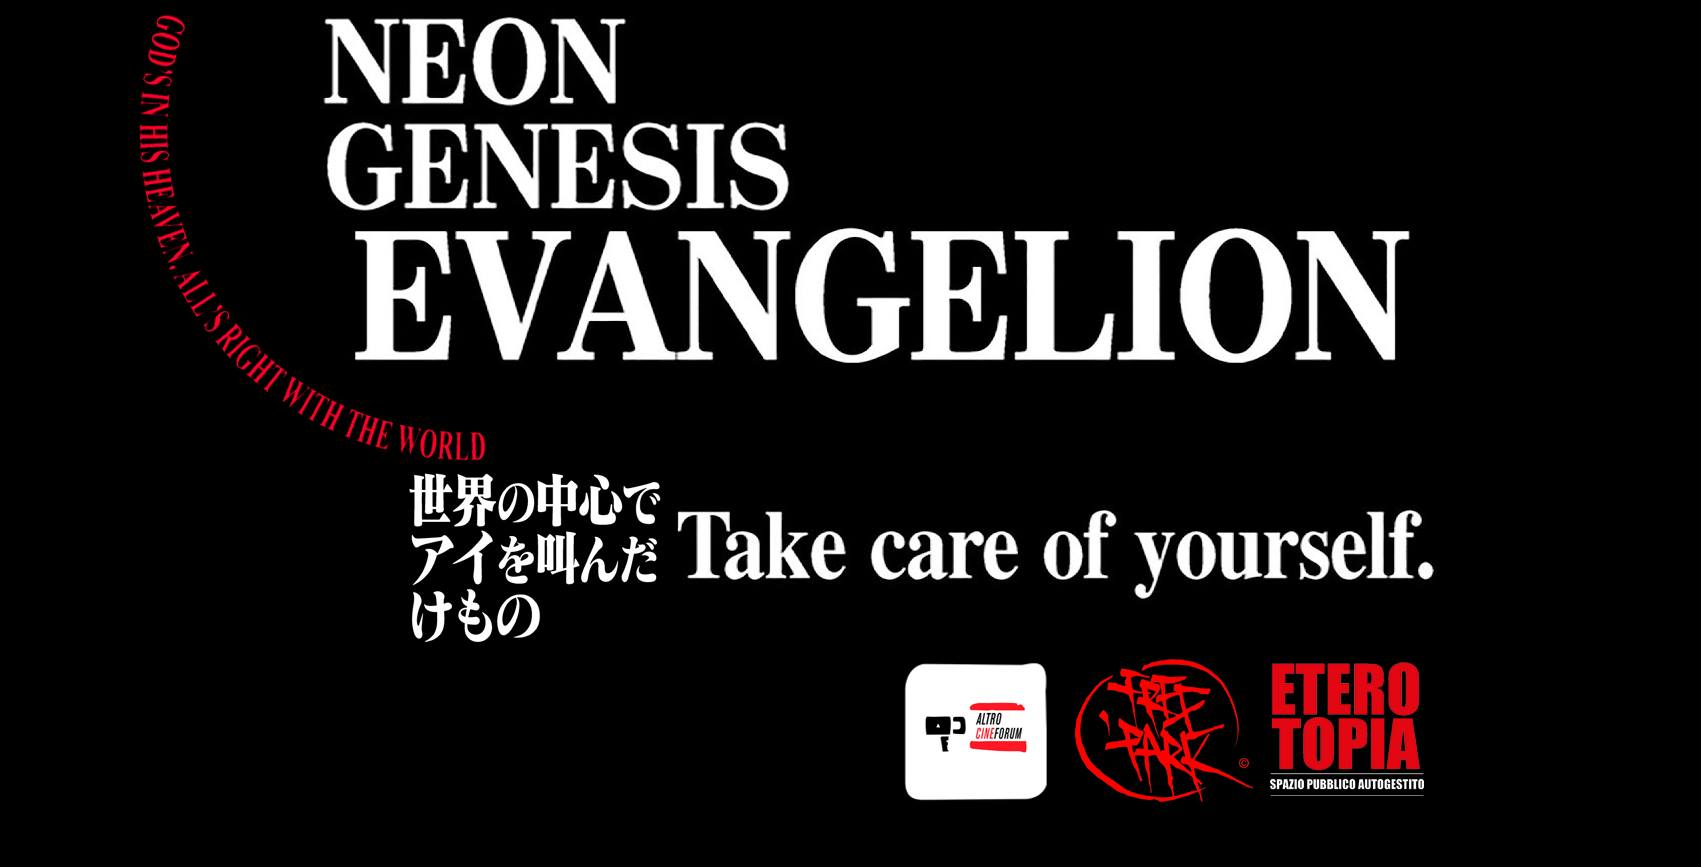 You Are – Not Alone: Neon Genesis Evangelion